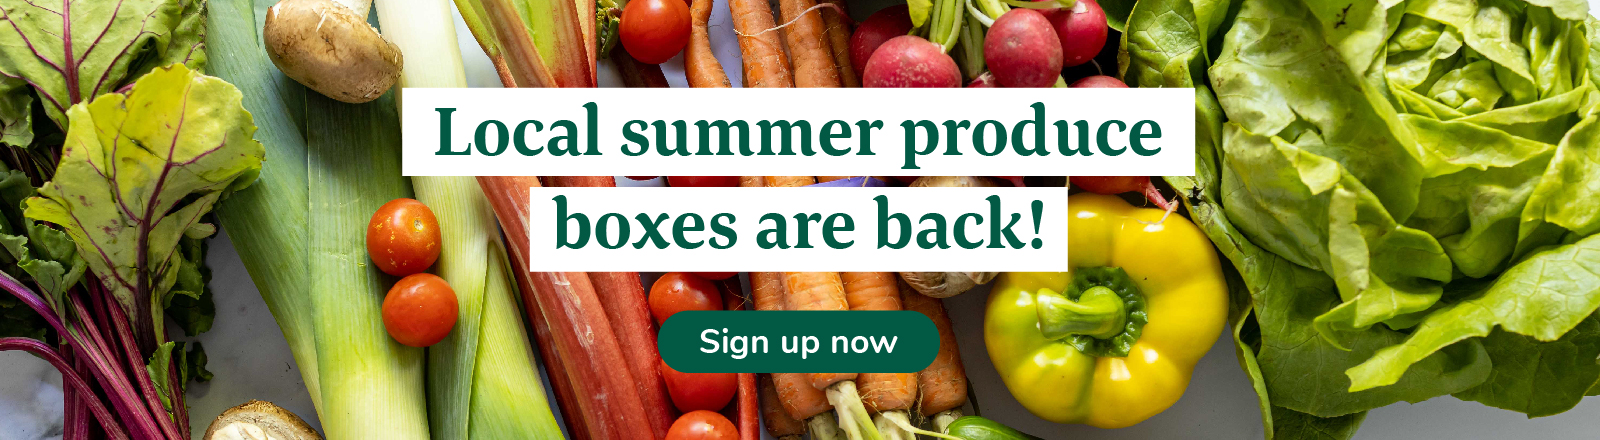 Sign up now for summer produce boxes